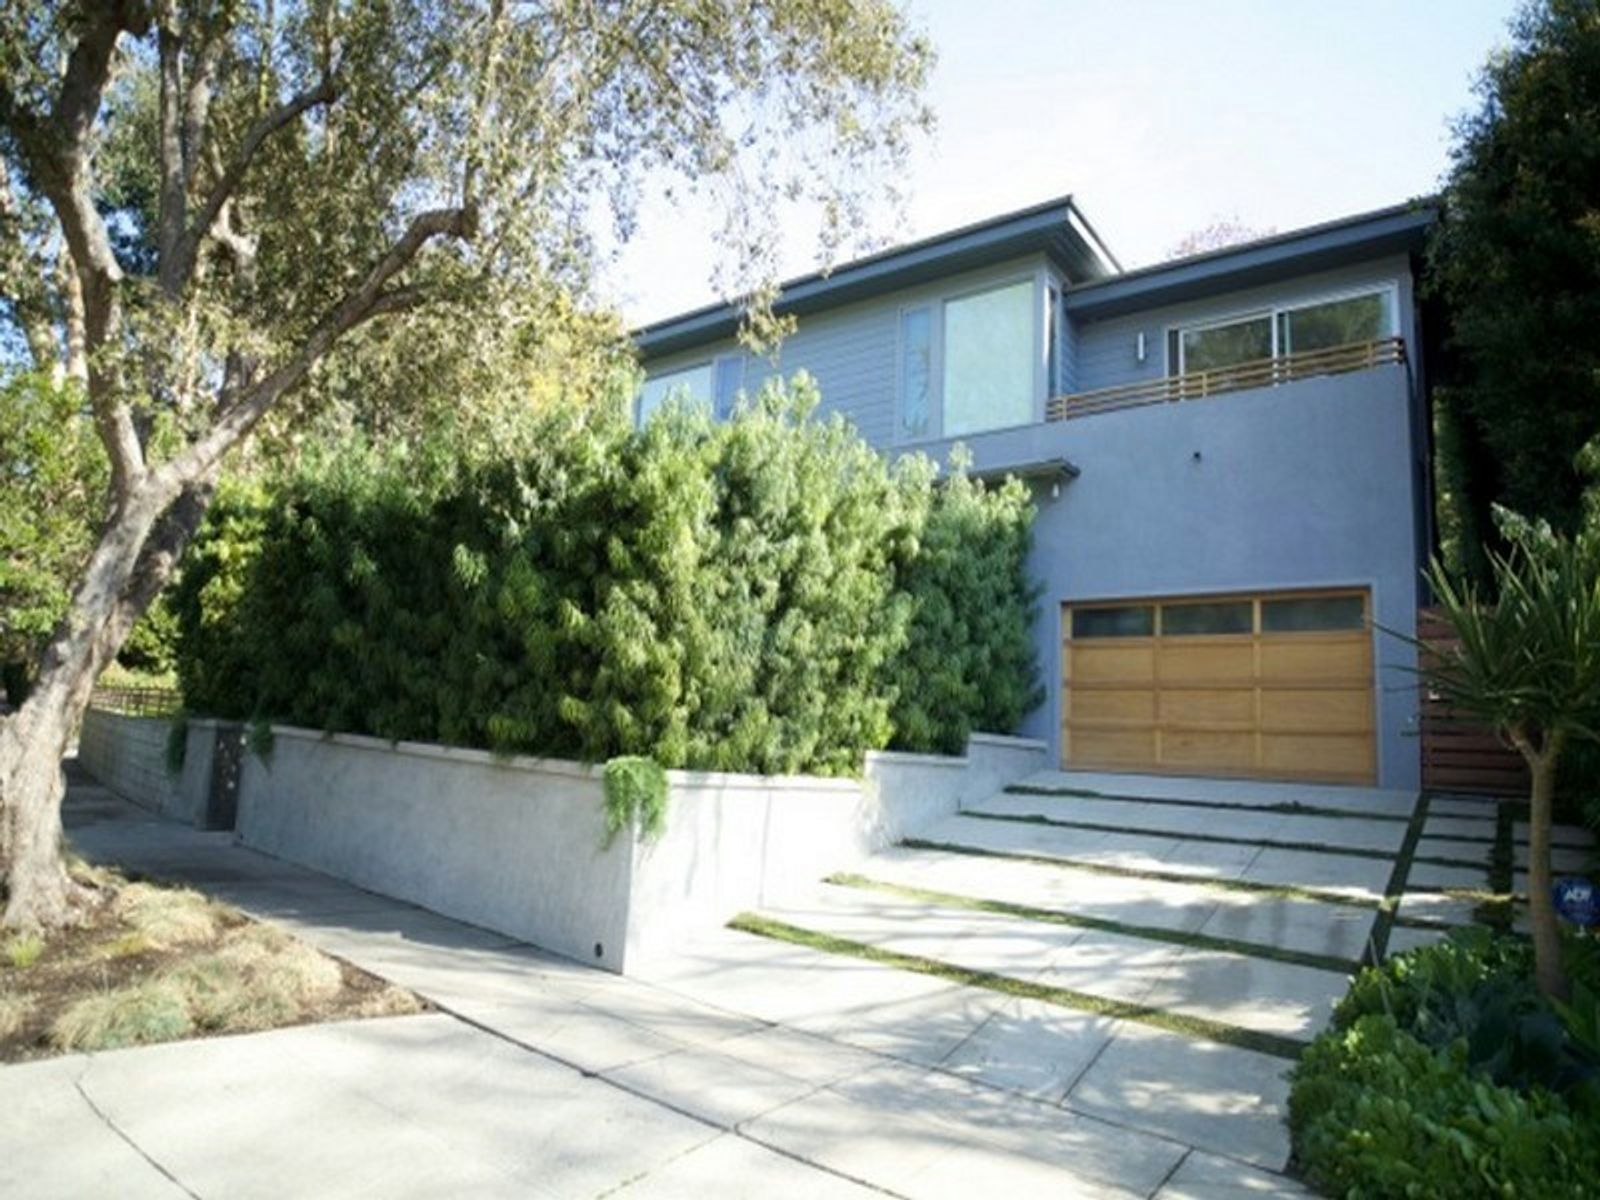 Luxury Summer Retreat, Santa Monica CA Single Family Home - Los Angeles Real Estate